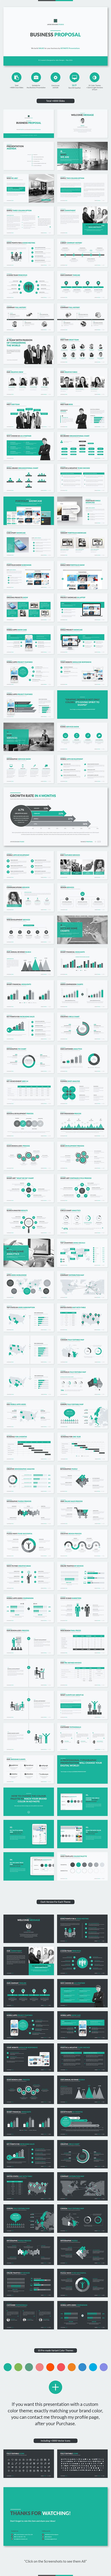 Business Infographic Business Proposal Keynote Template